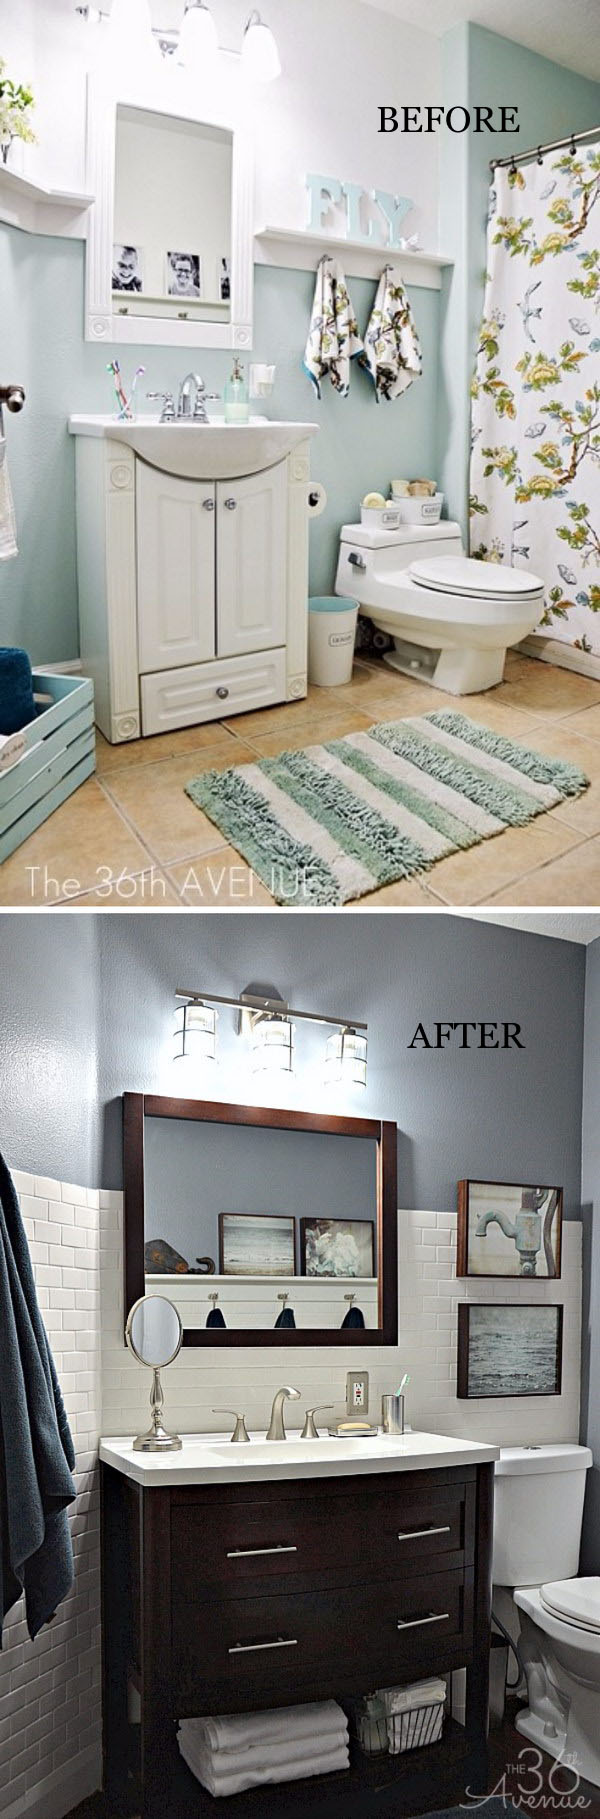 bathroom makeover pictures before and after before and after 20 awesome bathroom makeovers hative 24911